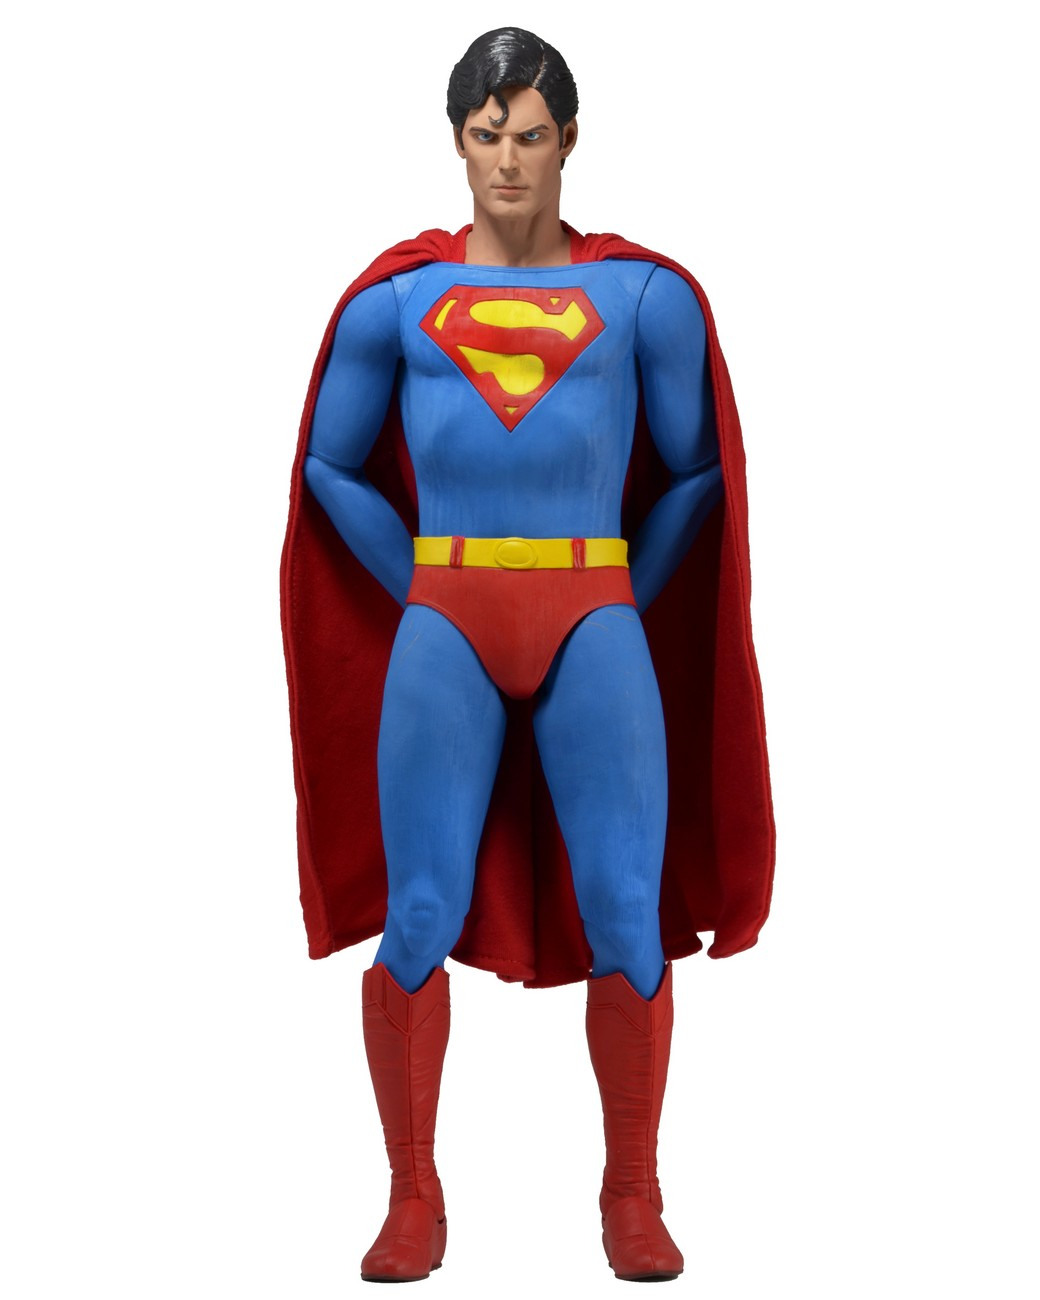 http://news.toyark.com/wp-content/uploads/sites/4/2015/06/Christopher-Reeve-18-Inch-Superman-by-NECA-004.jpg